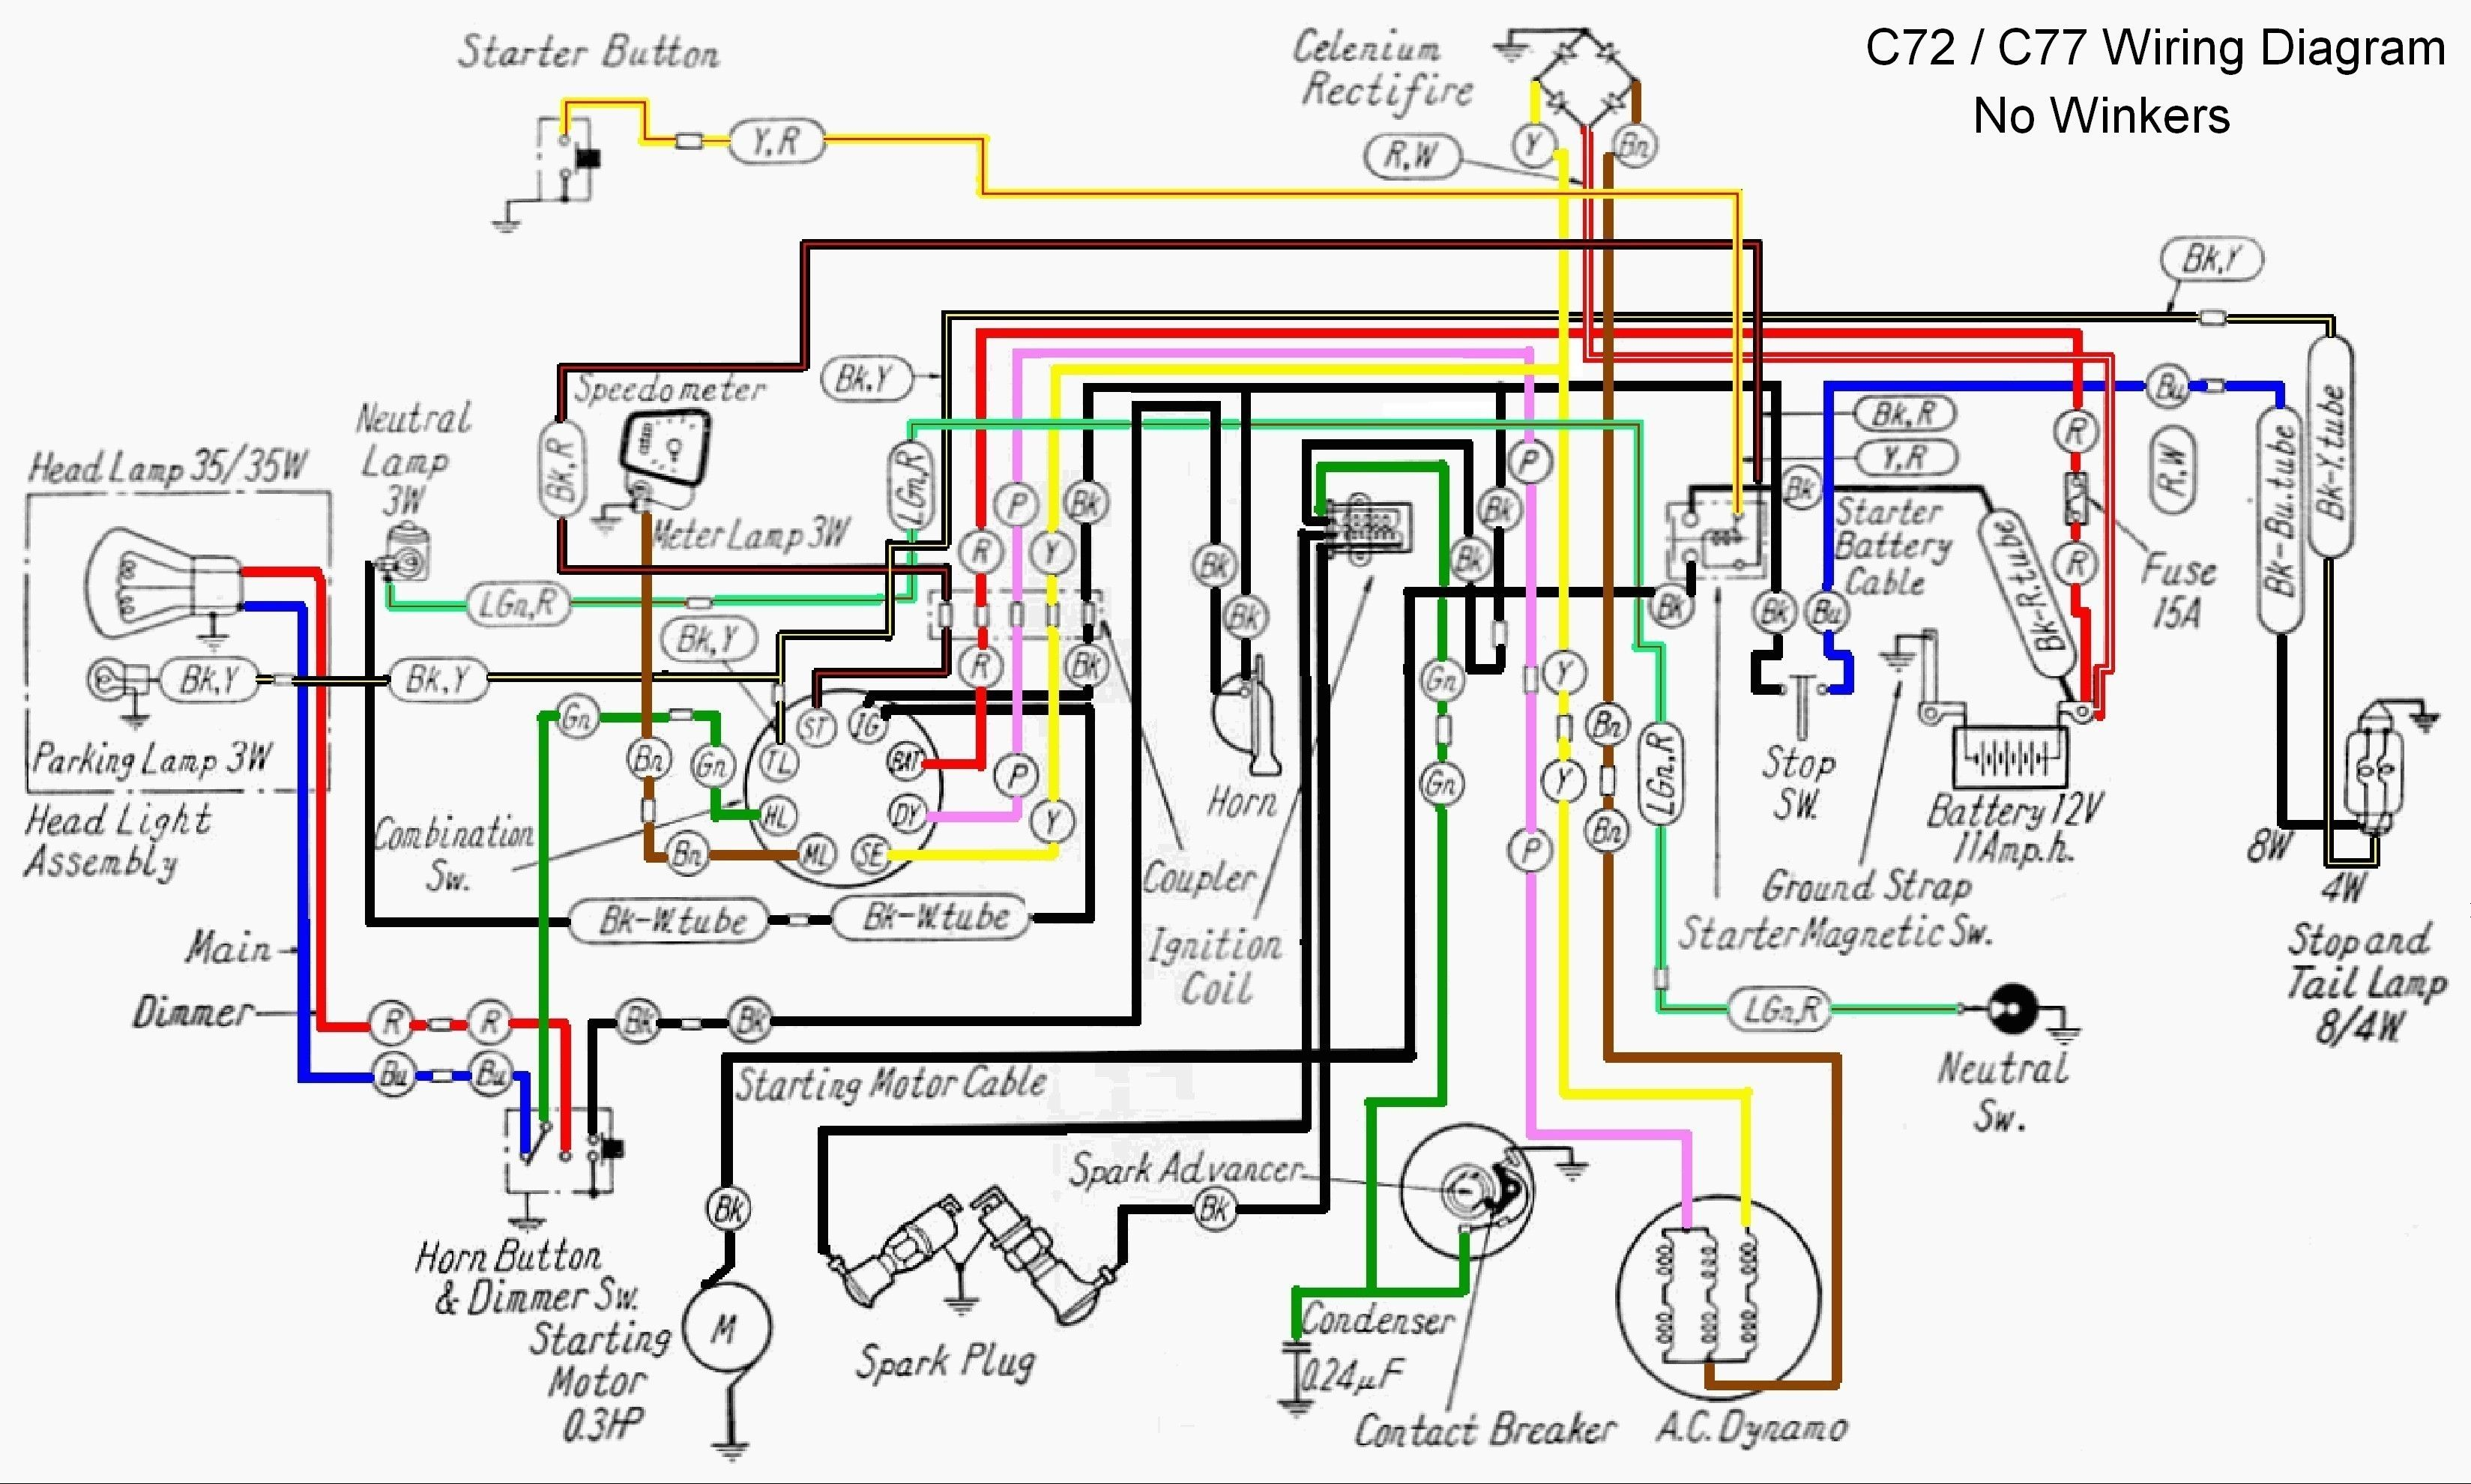 Unique Wiring Diagram Kelistrikan Ac Diagram Diagramtemplate Diagramsample Motorcycle Wiring Honda Motorcycles Honda Ex5